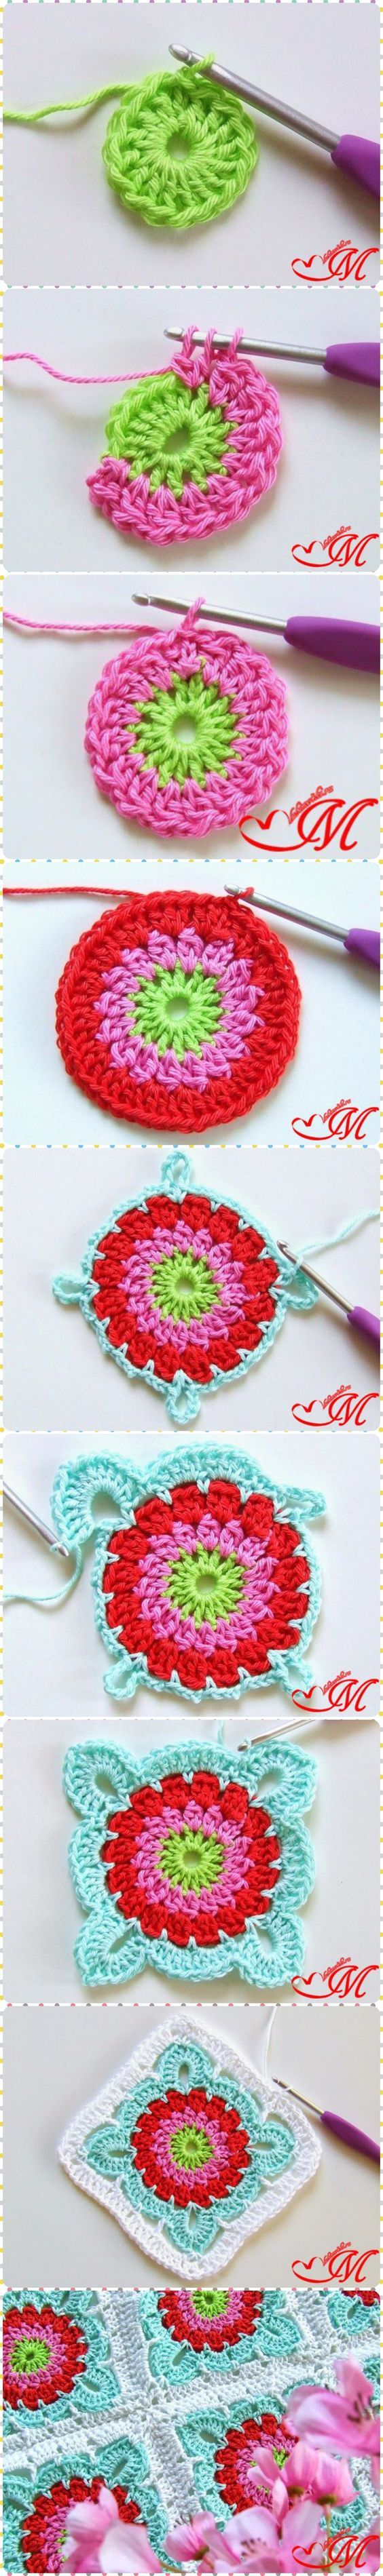 Jessica | Crochet Designs: How to Crochet Granny Square Blanket